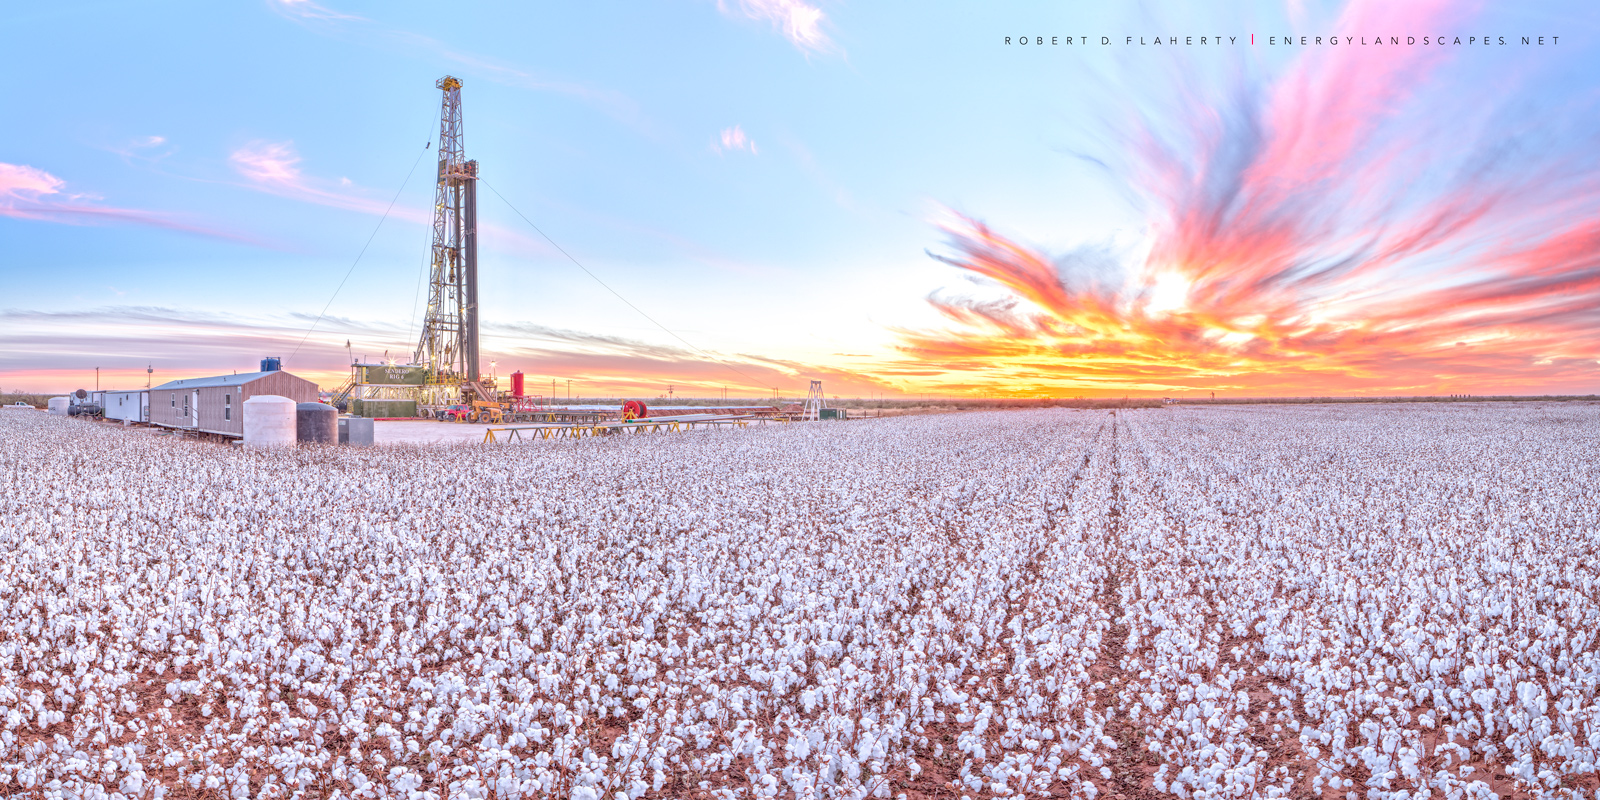 Tall Cotton, Tarzan Texas, Texas, drilling rig, mural, sunset, cotton, farming, vacuum Enclosure, perspective control lens, high resolution, Pioneer Natural Resources, photo